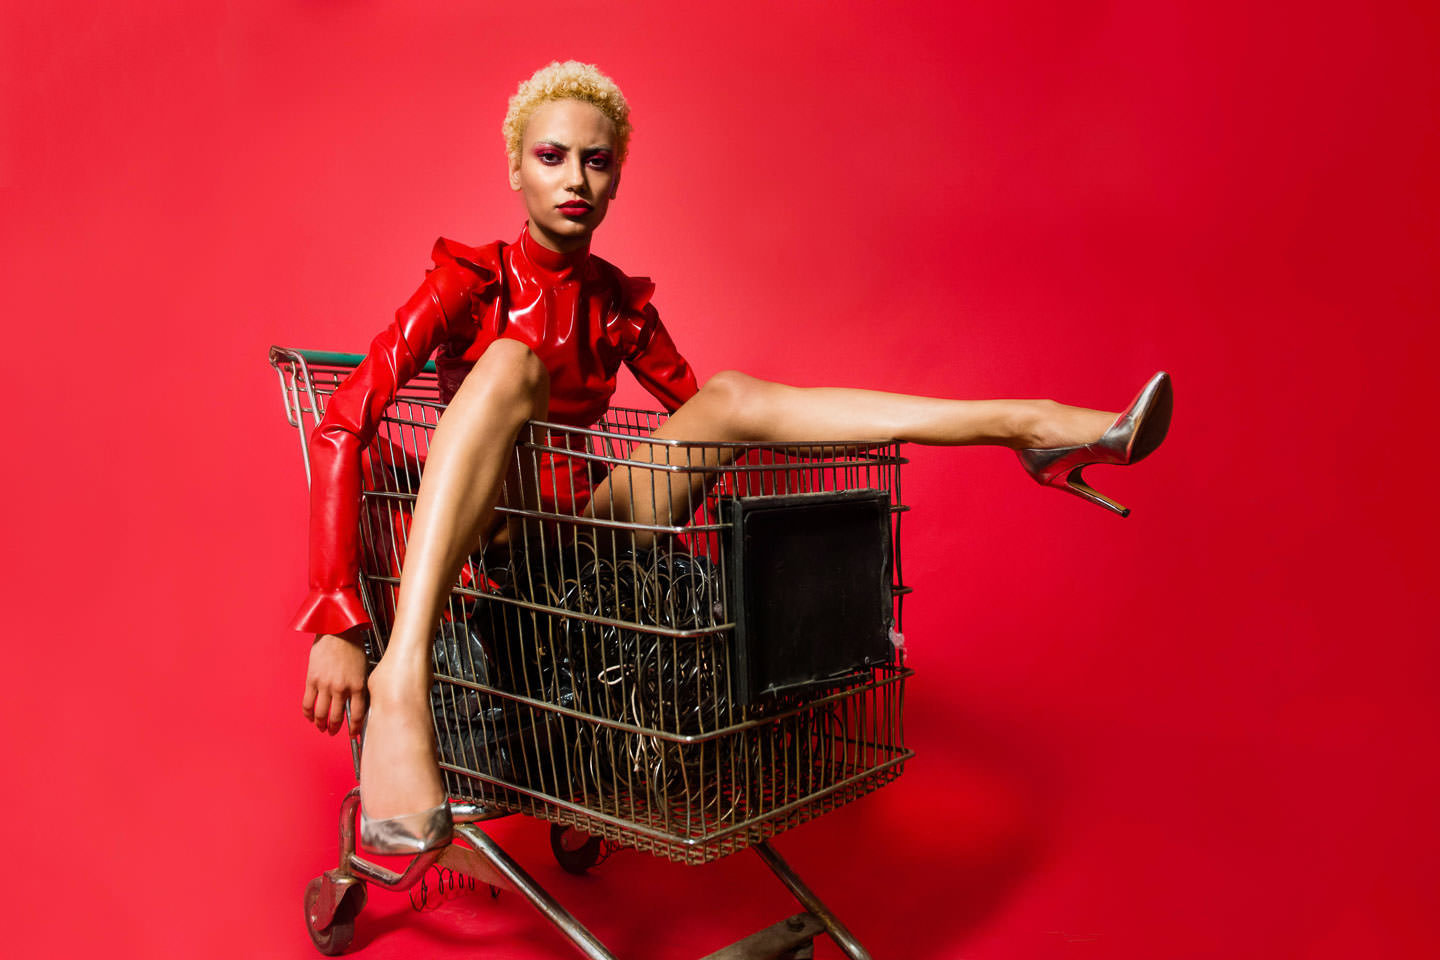 female model wearing red latex suit sits in a shopping cart on red background in studio